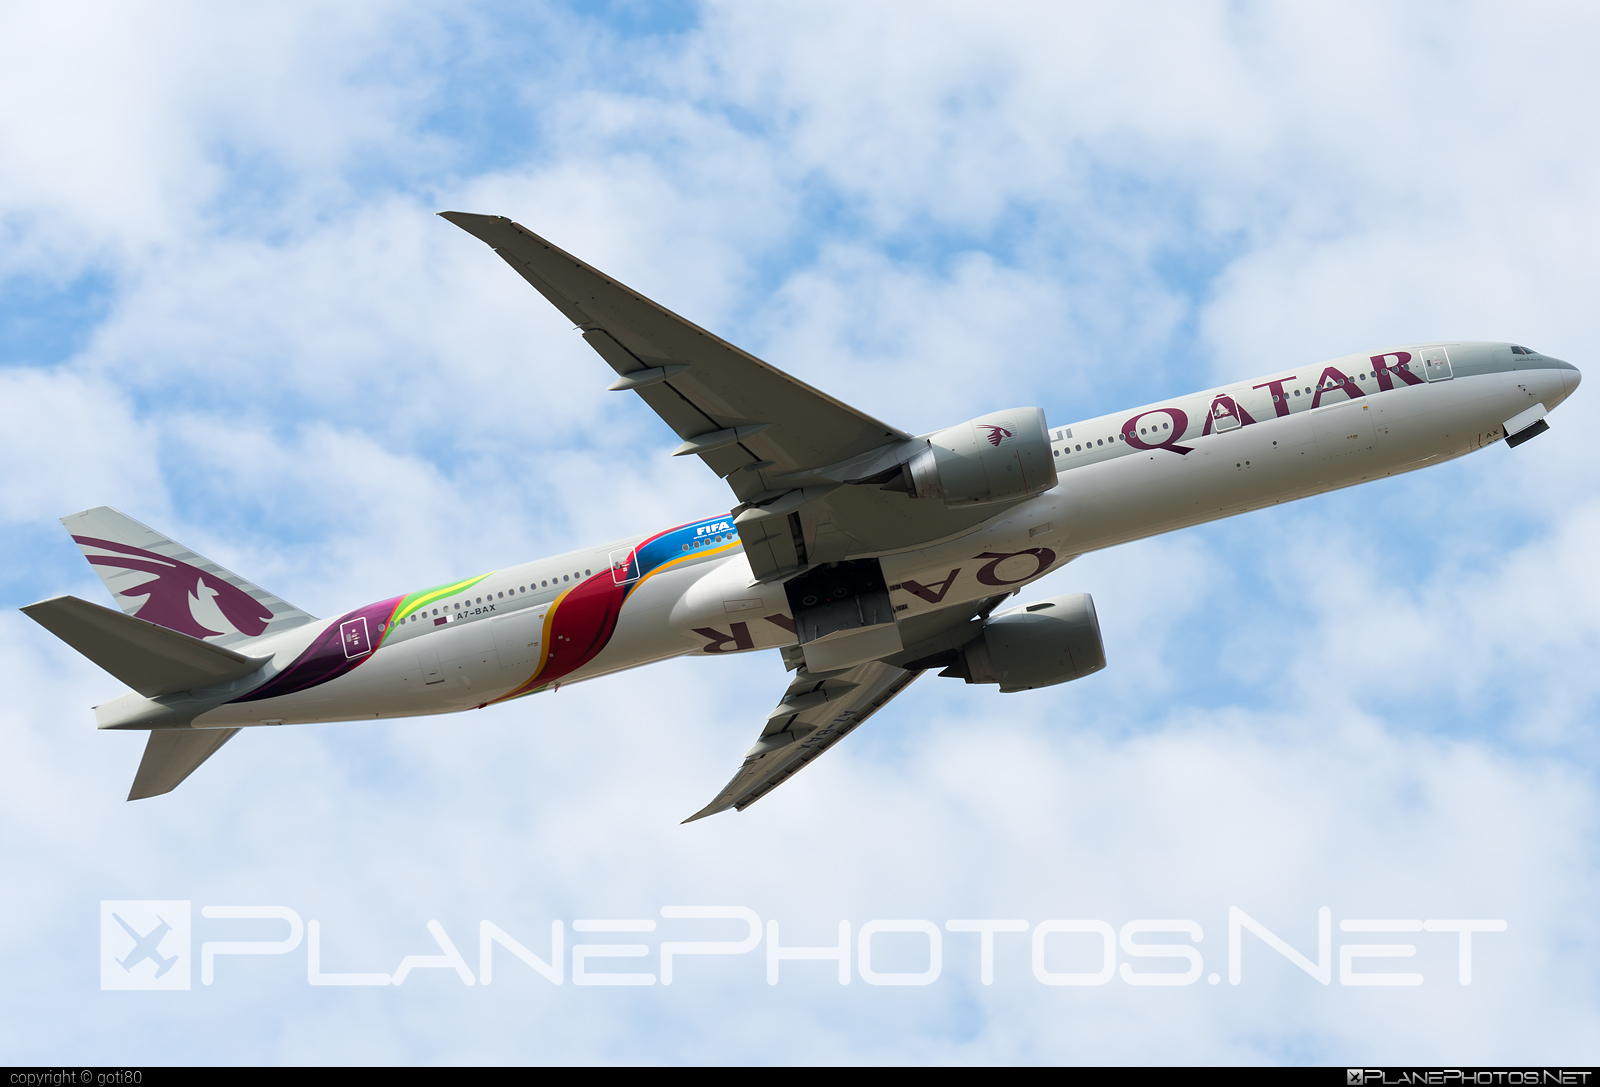 Boeing 777-300ER - A7-BAX operated by Qatar Airways #b777 #b777er #boeing #boeing777 #qatarairways #tripleseven